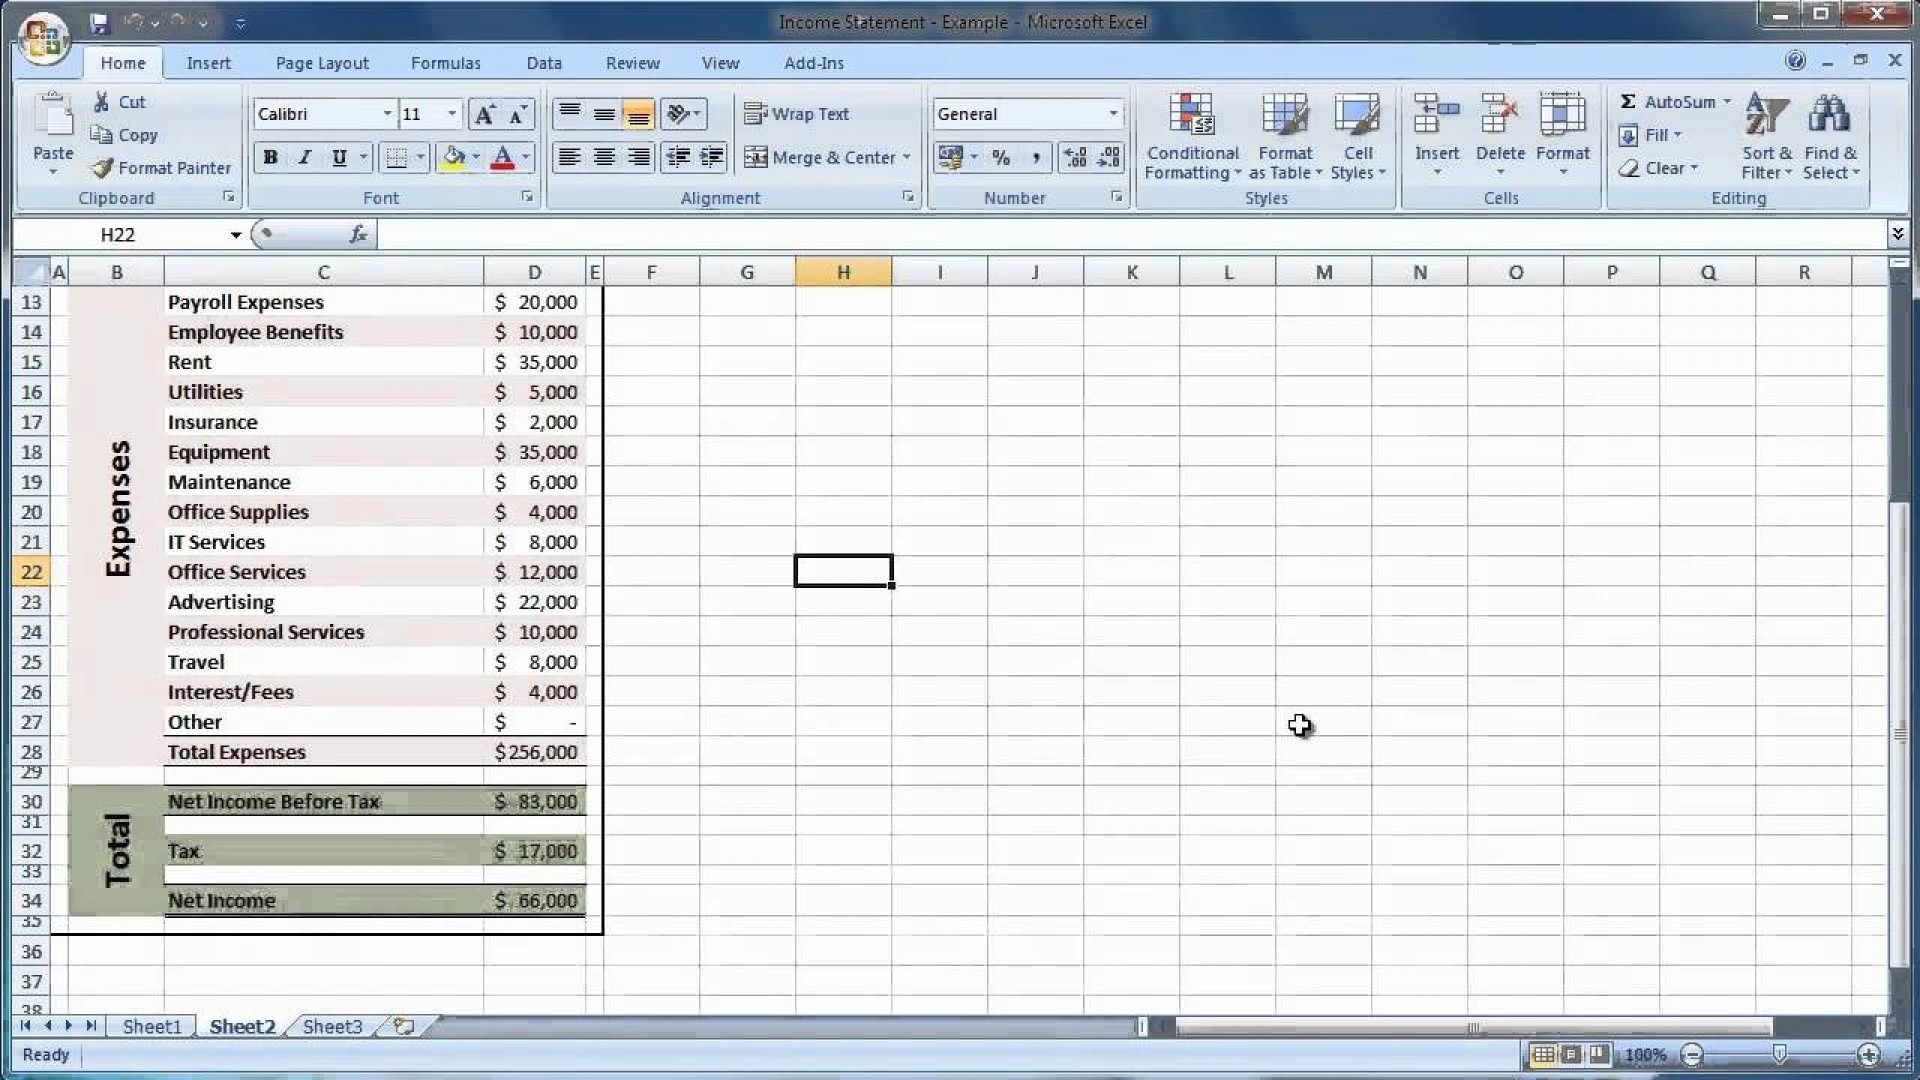 005 Formidable Income Statement Excel Template Image  Quarterly Simple Personal Expense1920